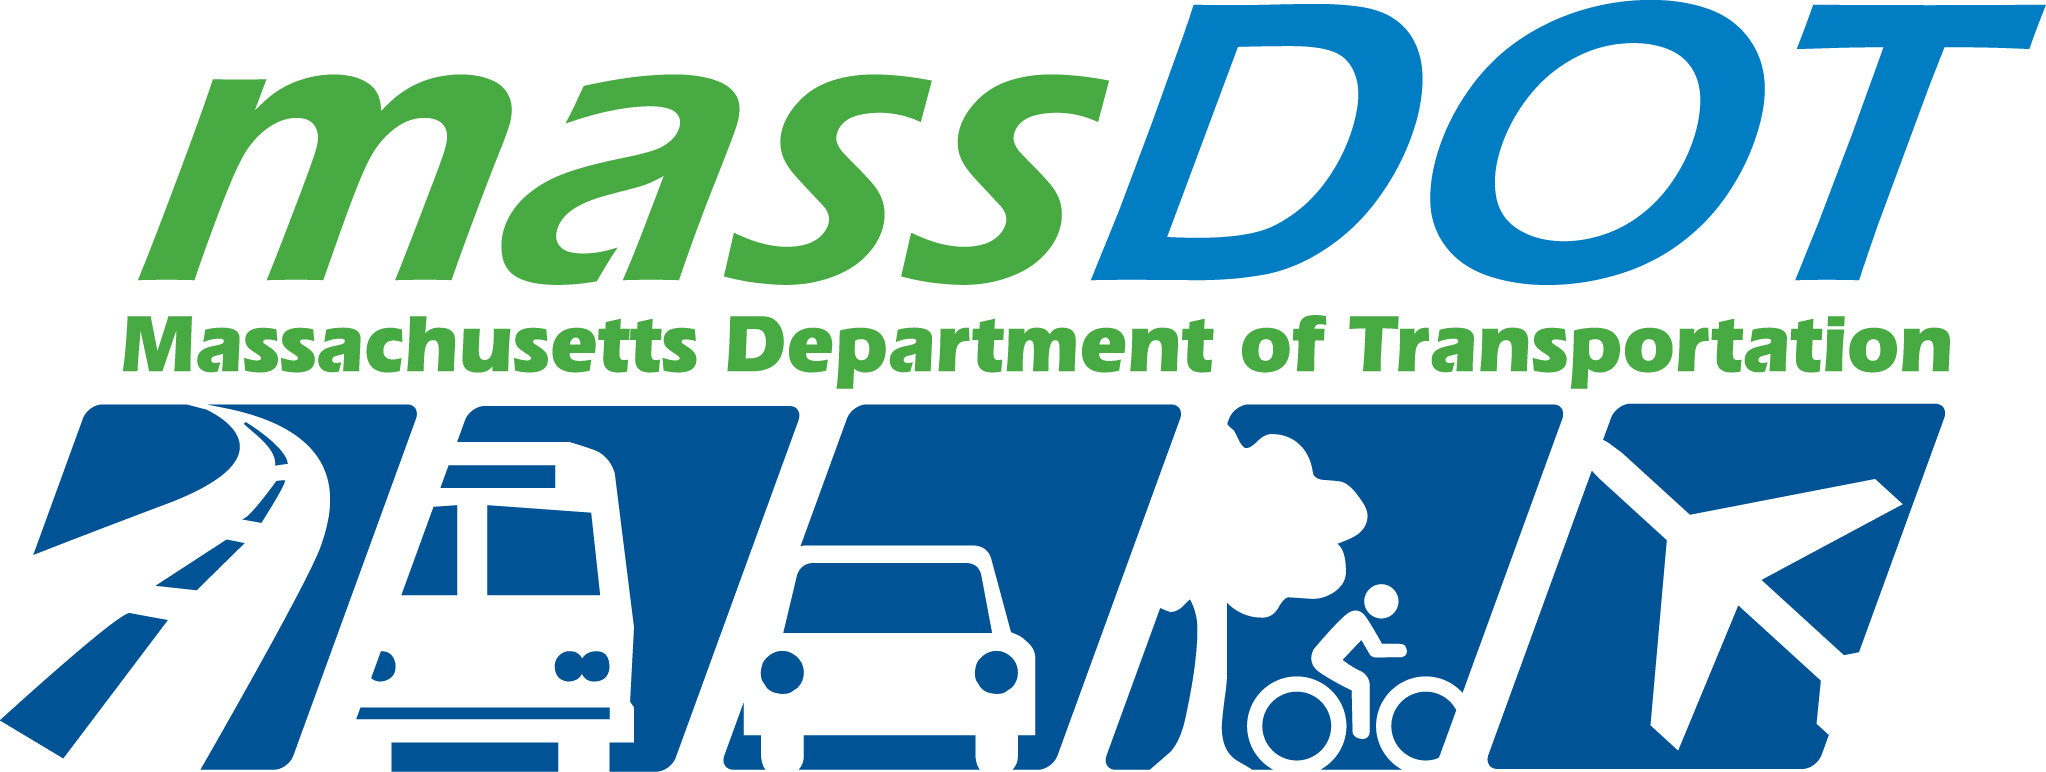 MassDOT Investor Relations - Official Seal or Logo